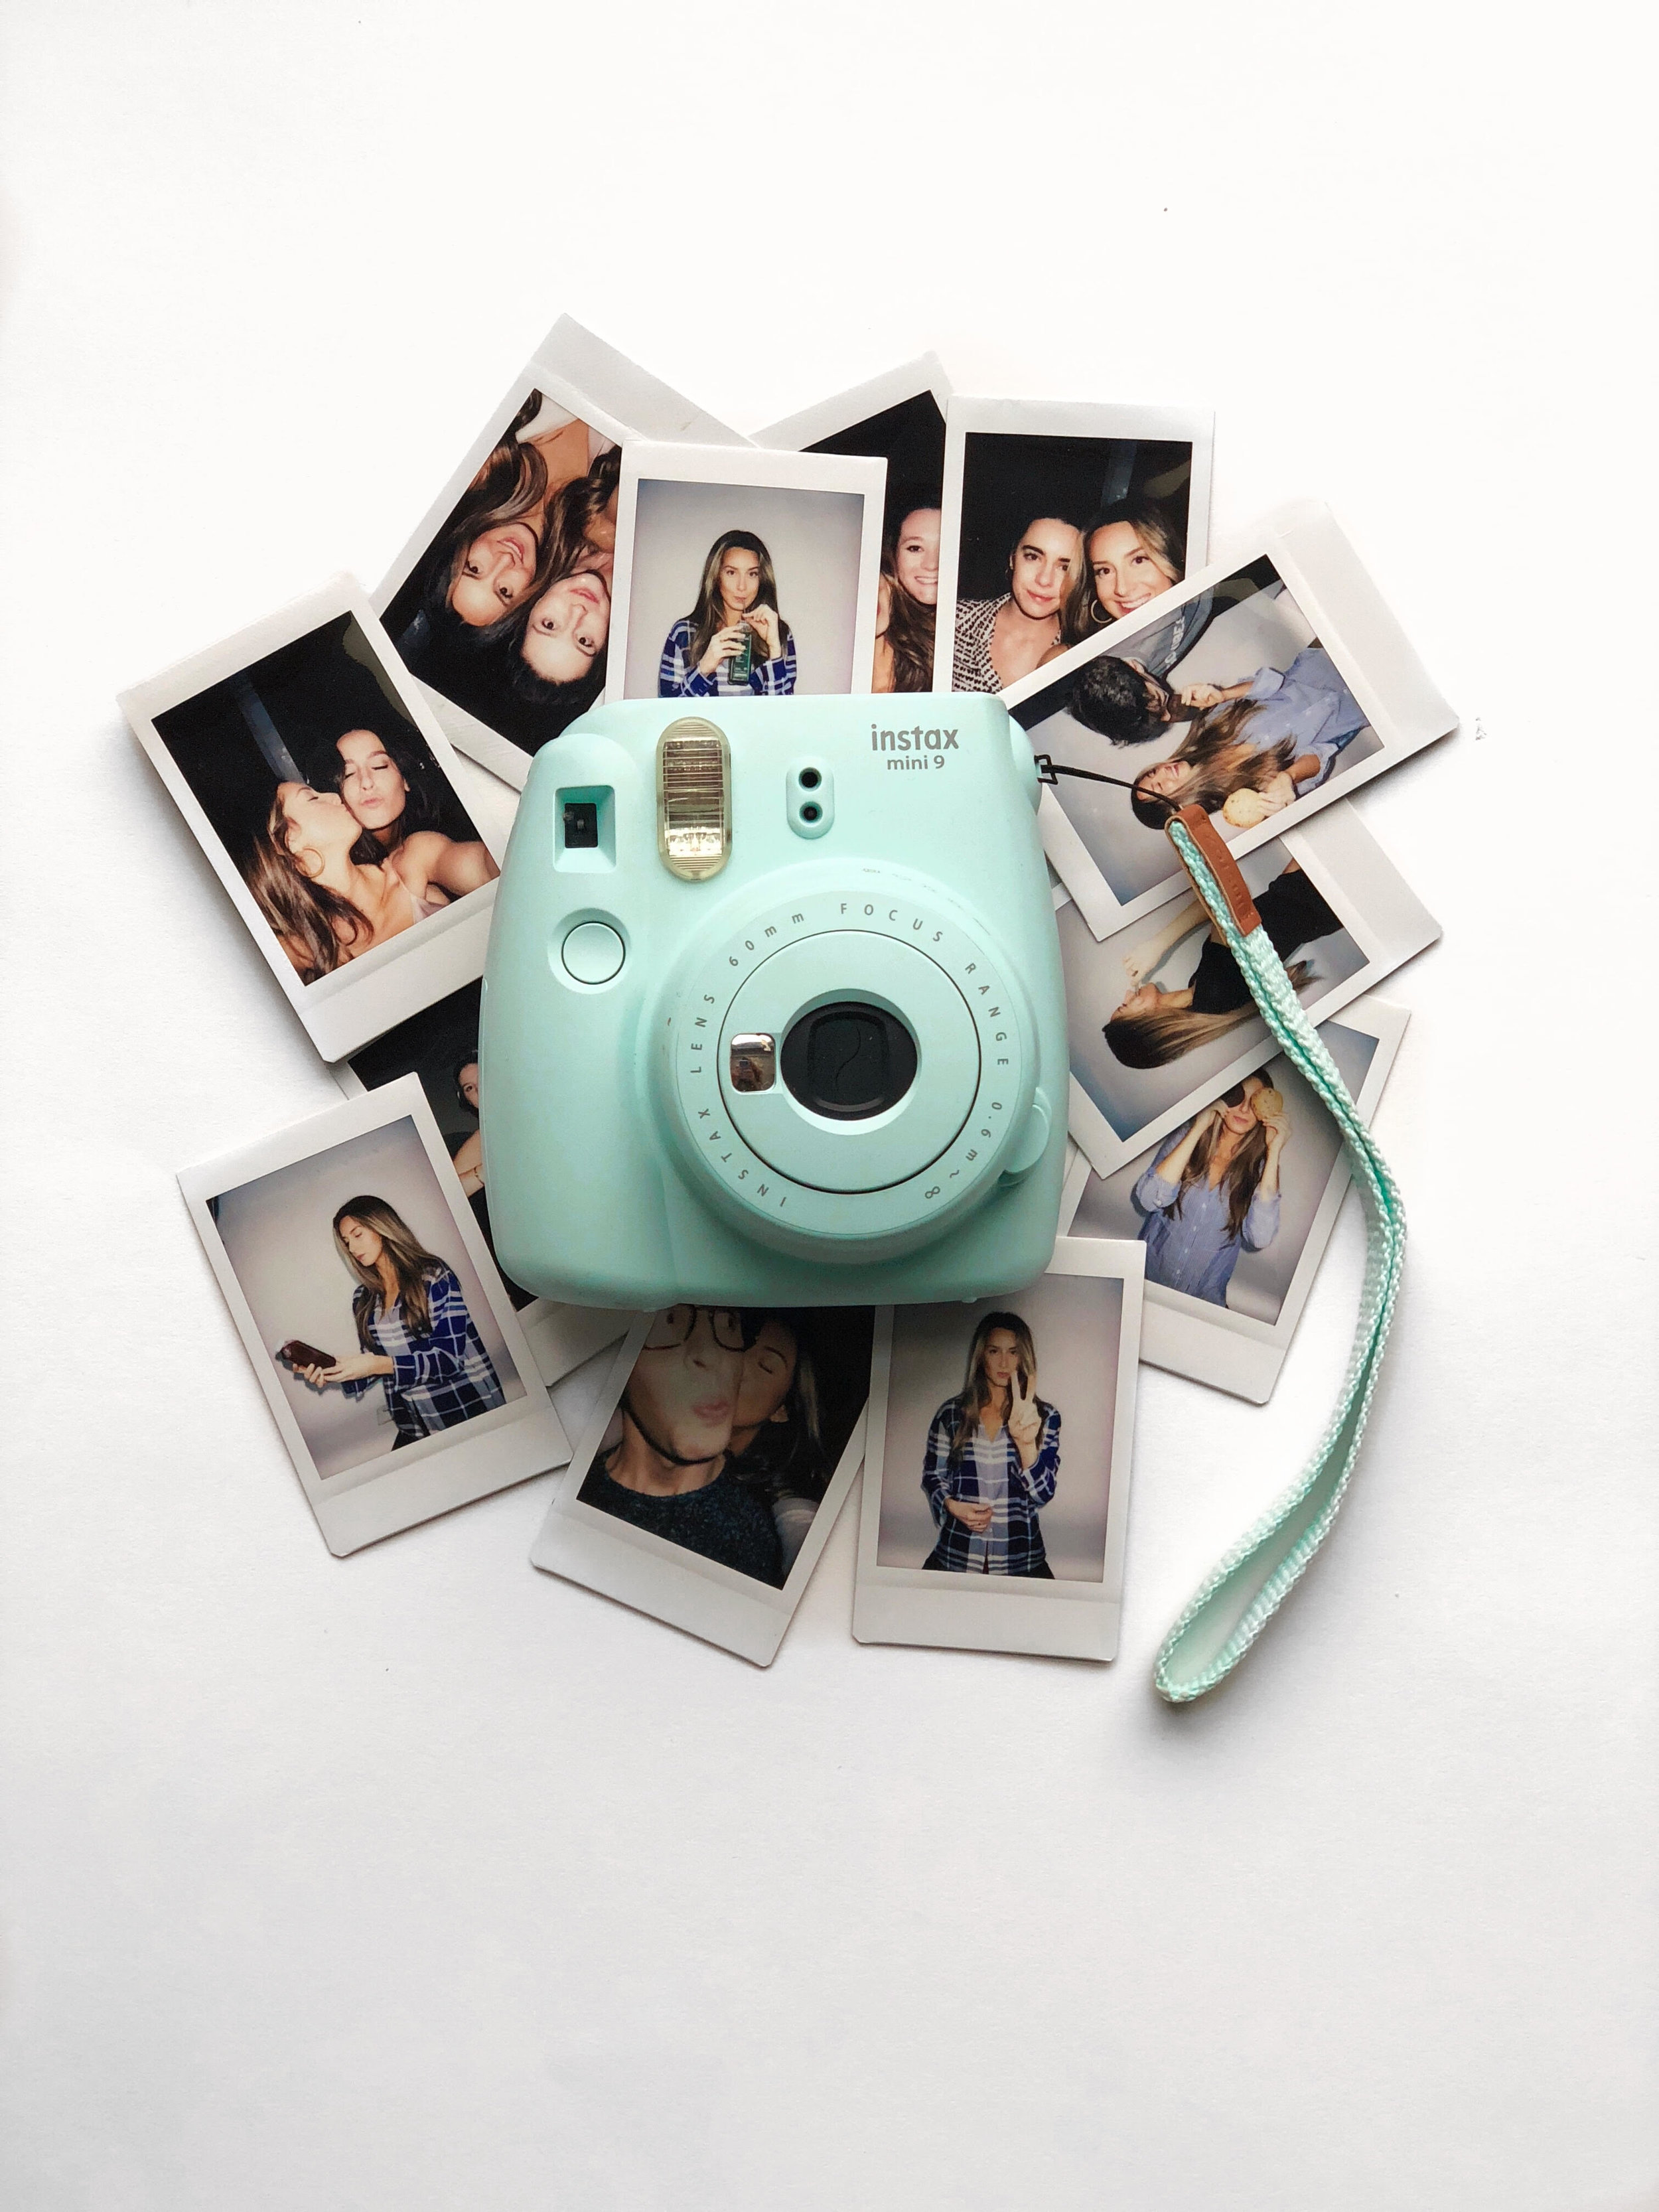 Copy of FUJIFILM INSTAX MINI